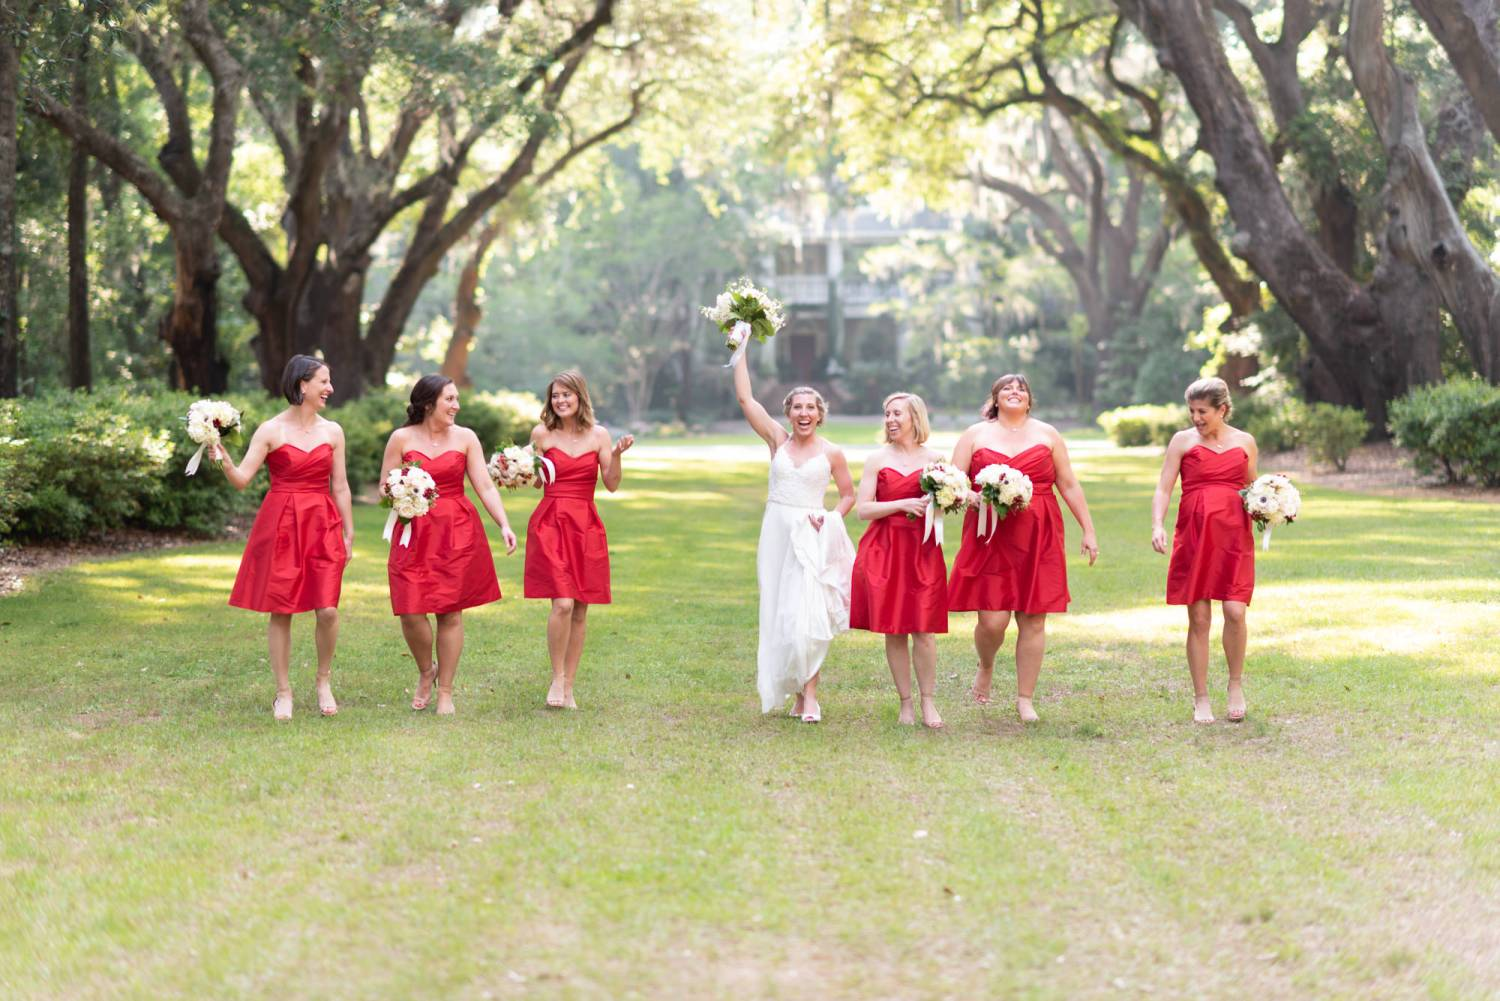 Bridesmaids walking together - Wachesaw Plantation